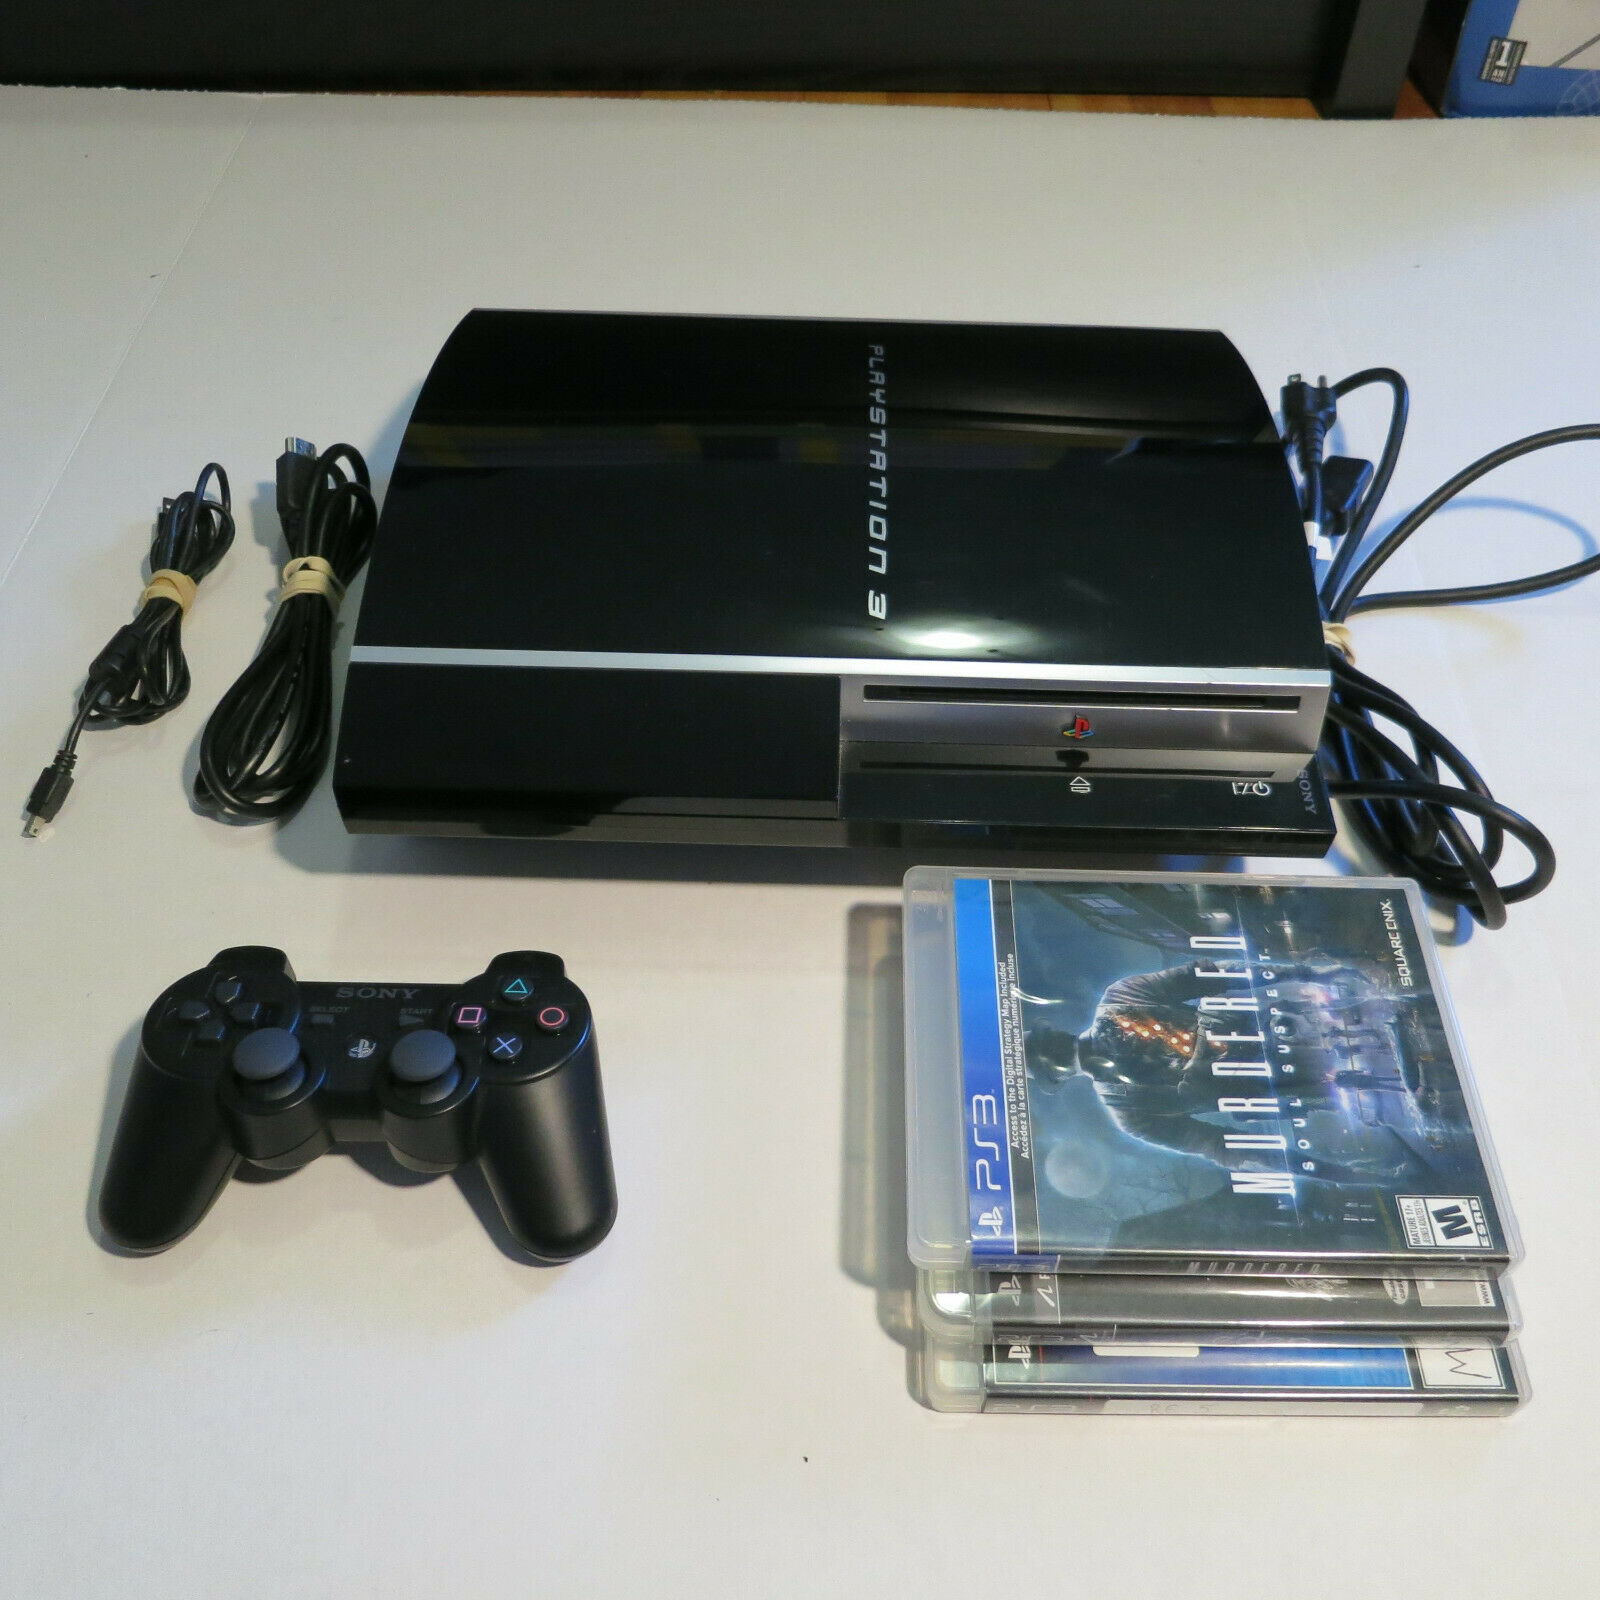 Sony Playstation 3 PS3 Fat 80GB CECHK01 Bundle w/ 3 Games, TESTED